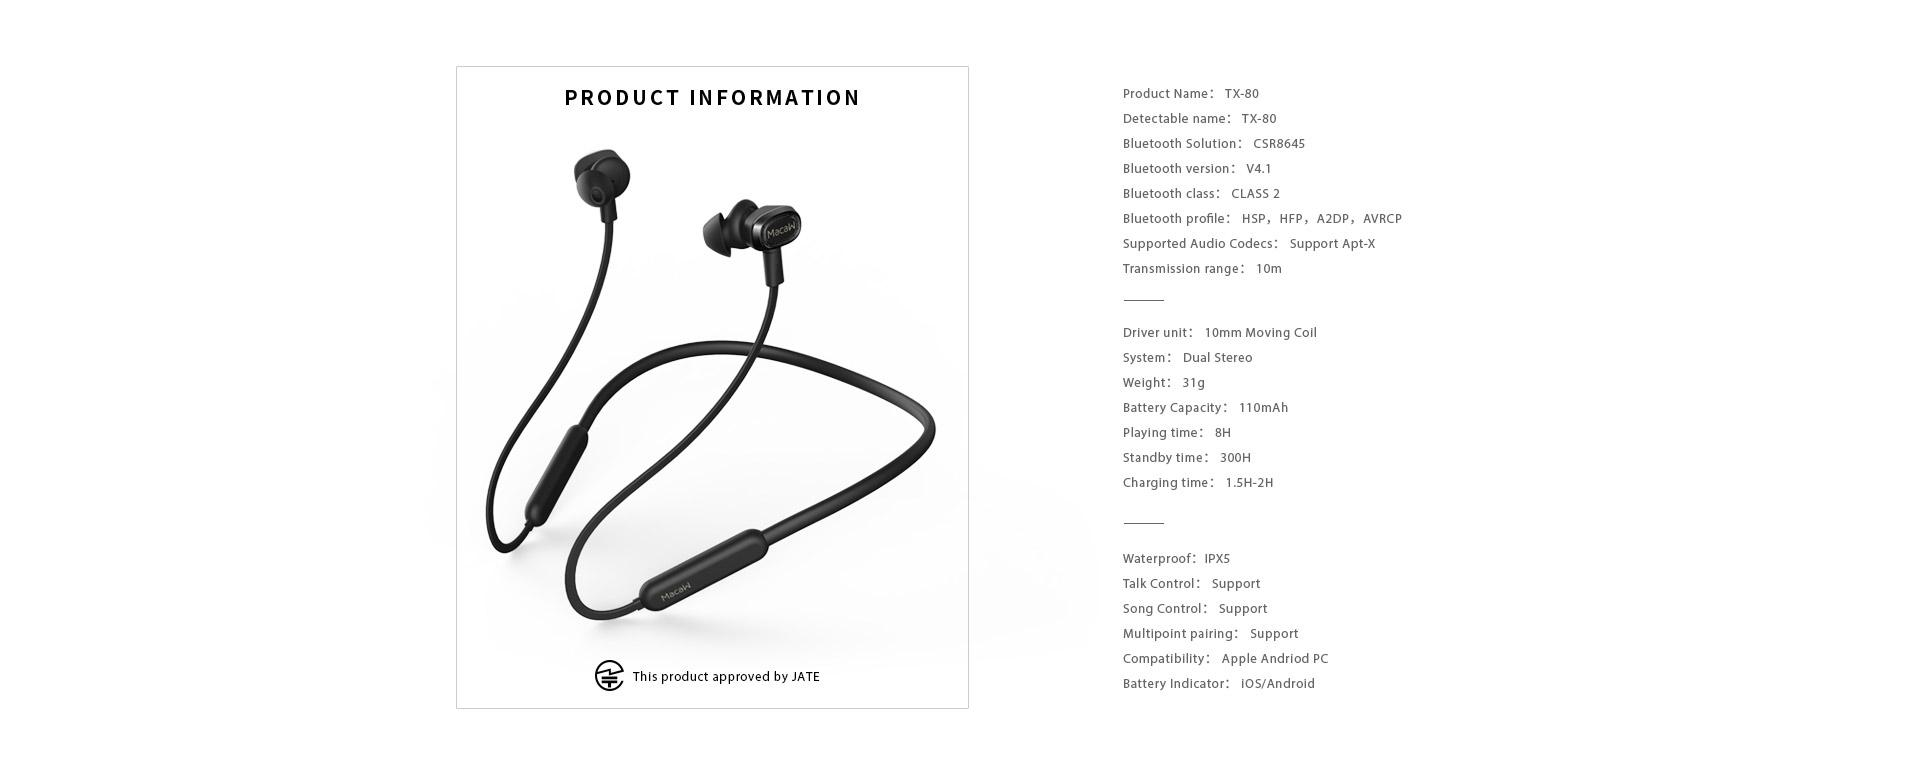 Earbuds bluetooth heavy bass - bluetooth earbuds flash sale